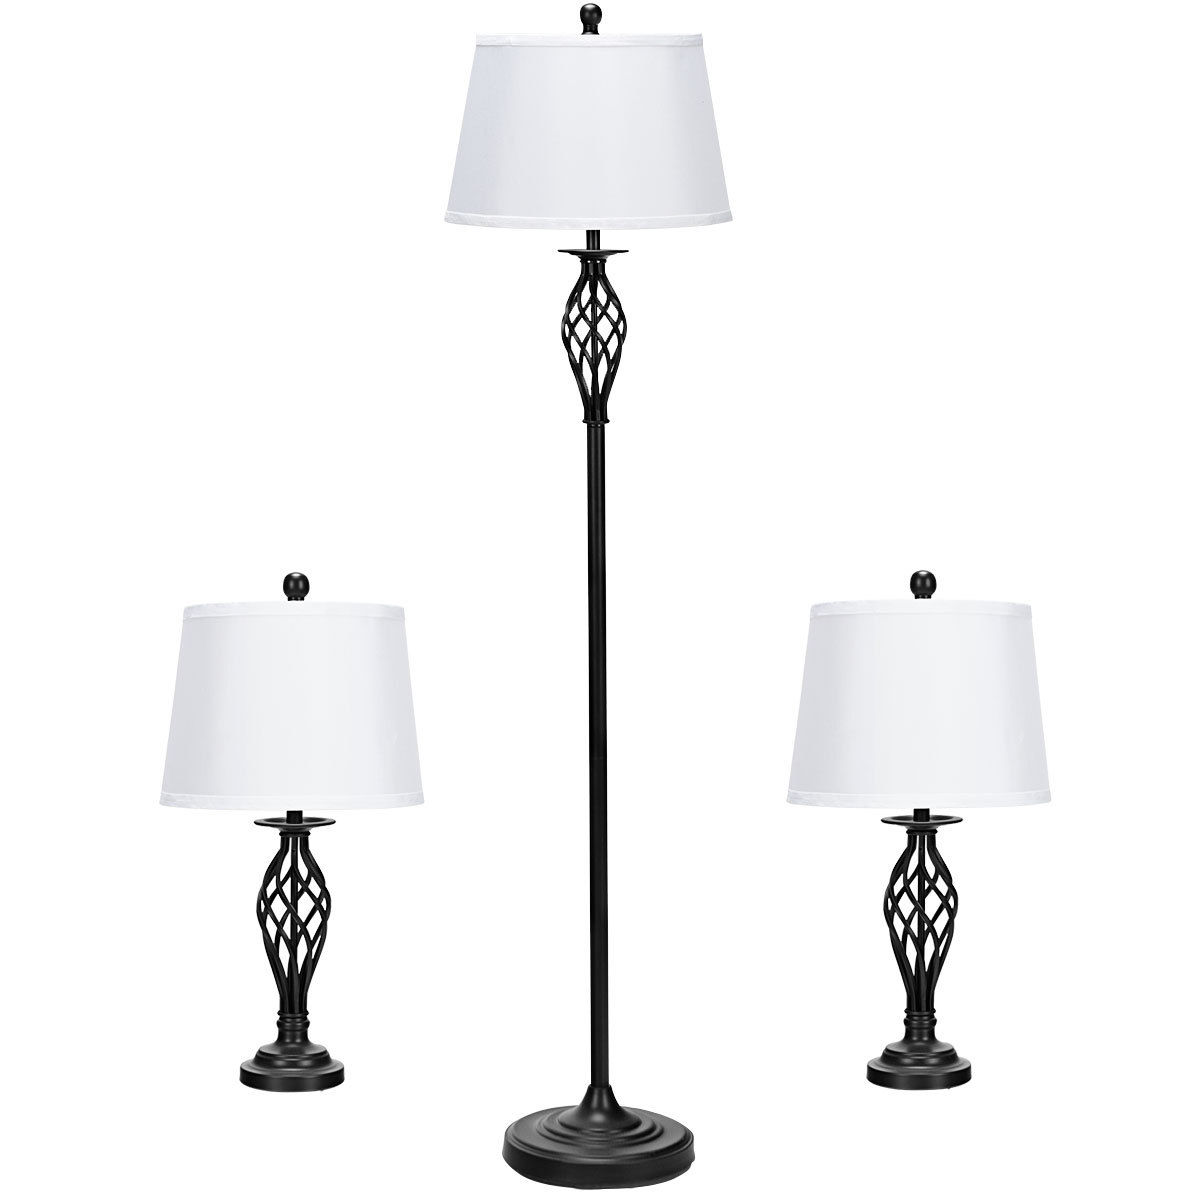 Gymax 3 Piece Lamp Set 2 Table Lamps 1 Floor Lamp Fabric Shades